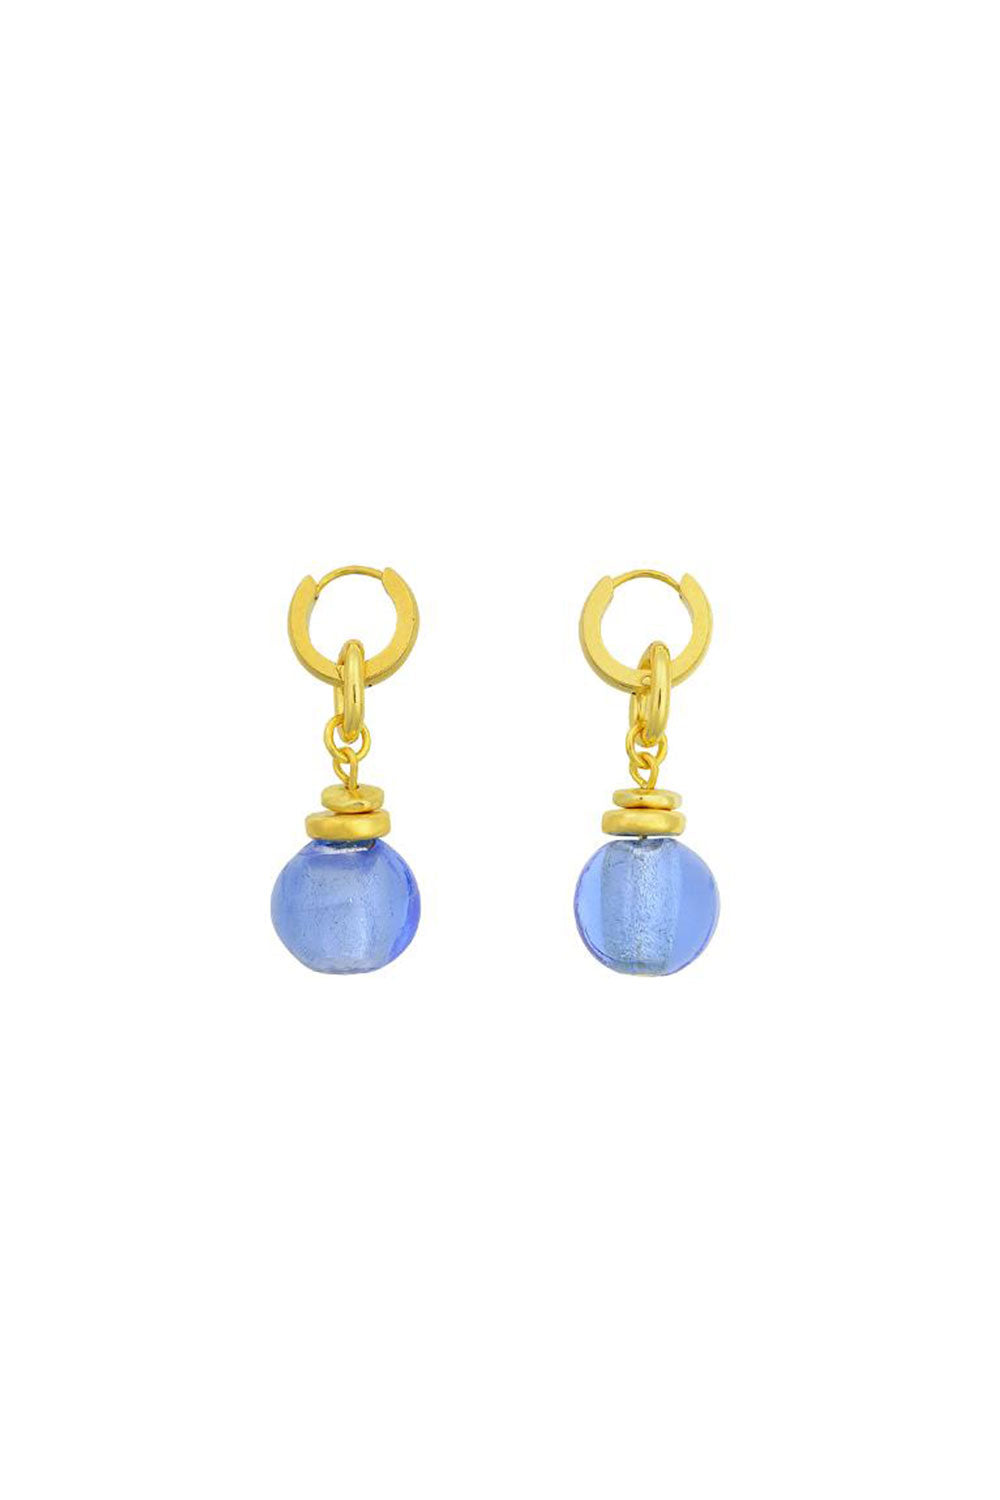 VALENTINA GLASS BEAD EARRINGS | GOLD\BLUE | BRIE LEON NZ | Jewellery NZ | Black Box Boutique Auckland | Womens Fashion NZ